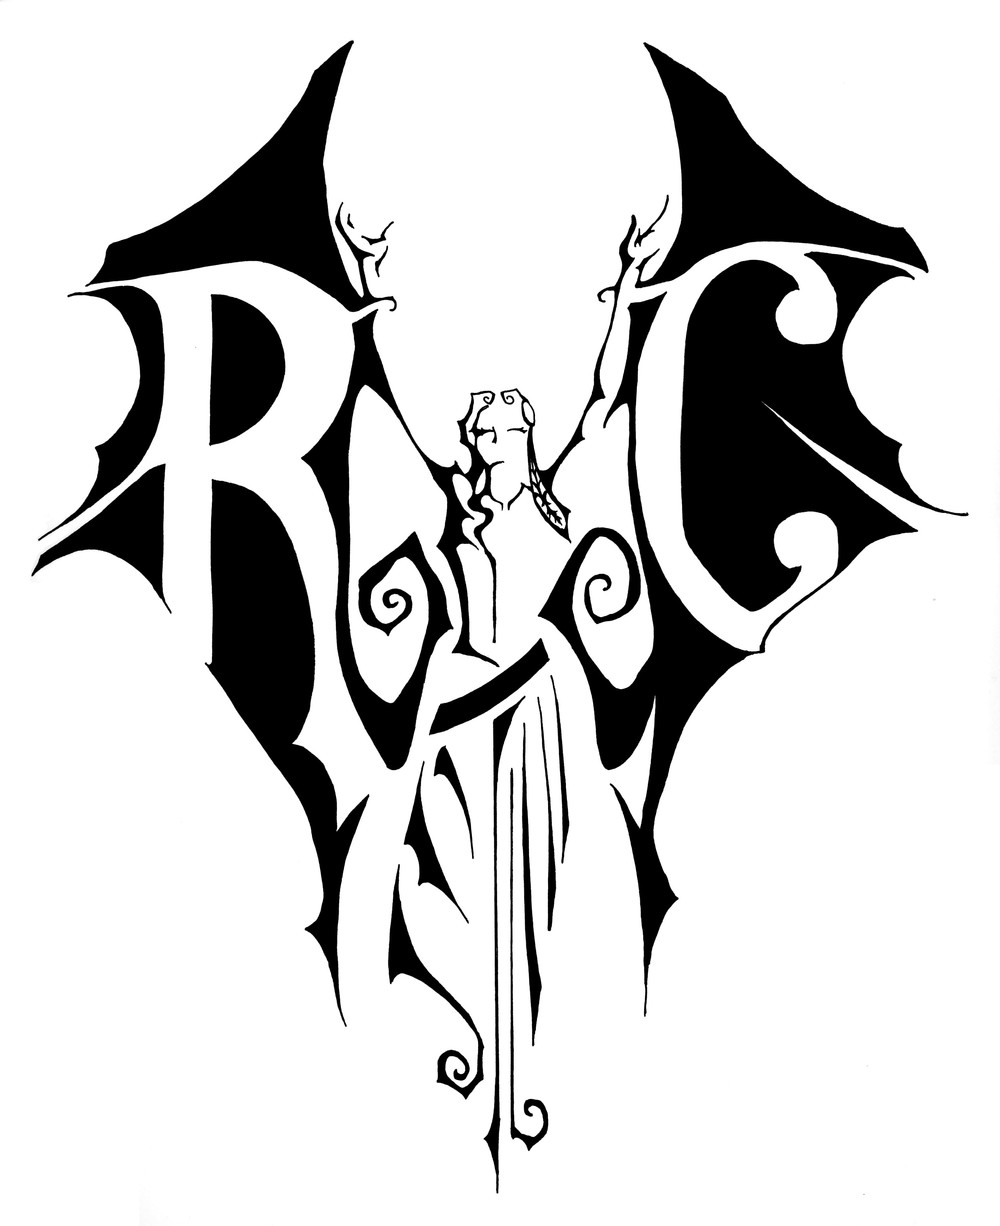 Rosin Covin band logo